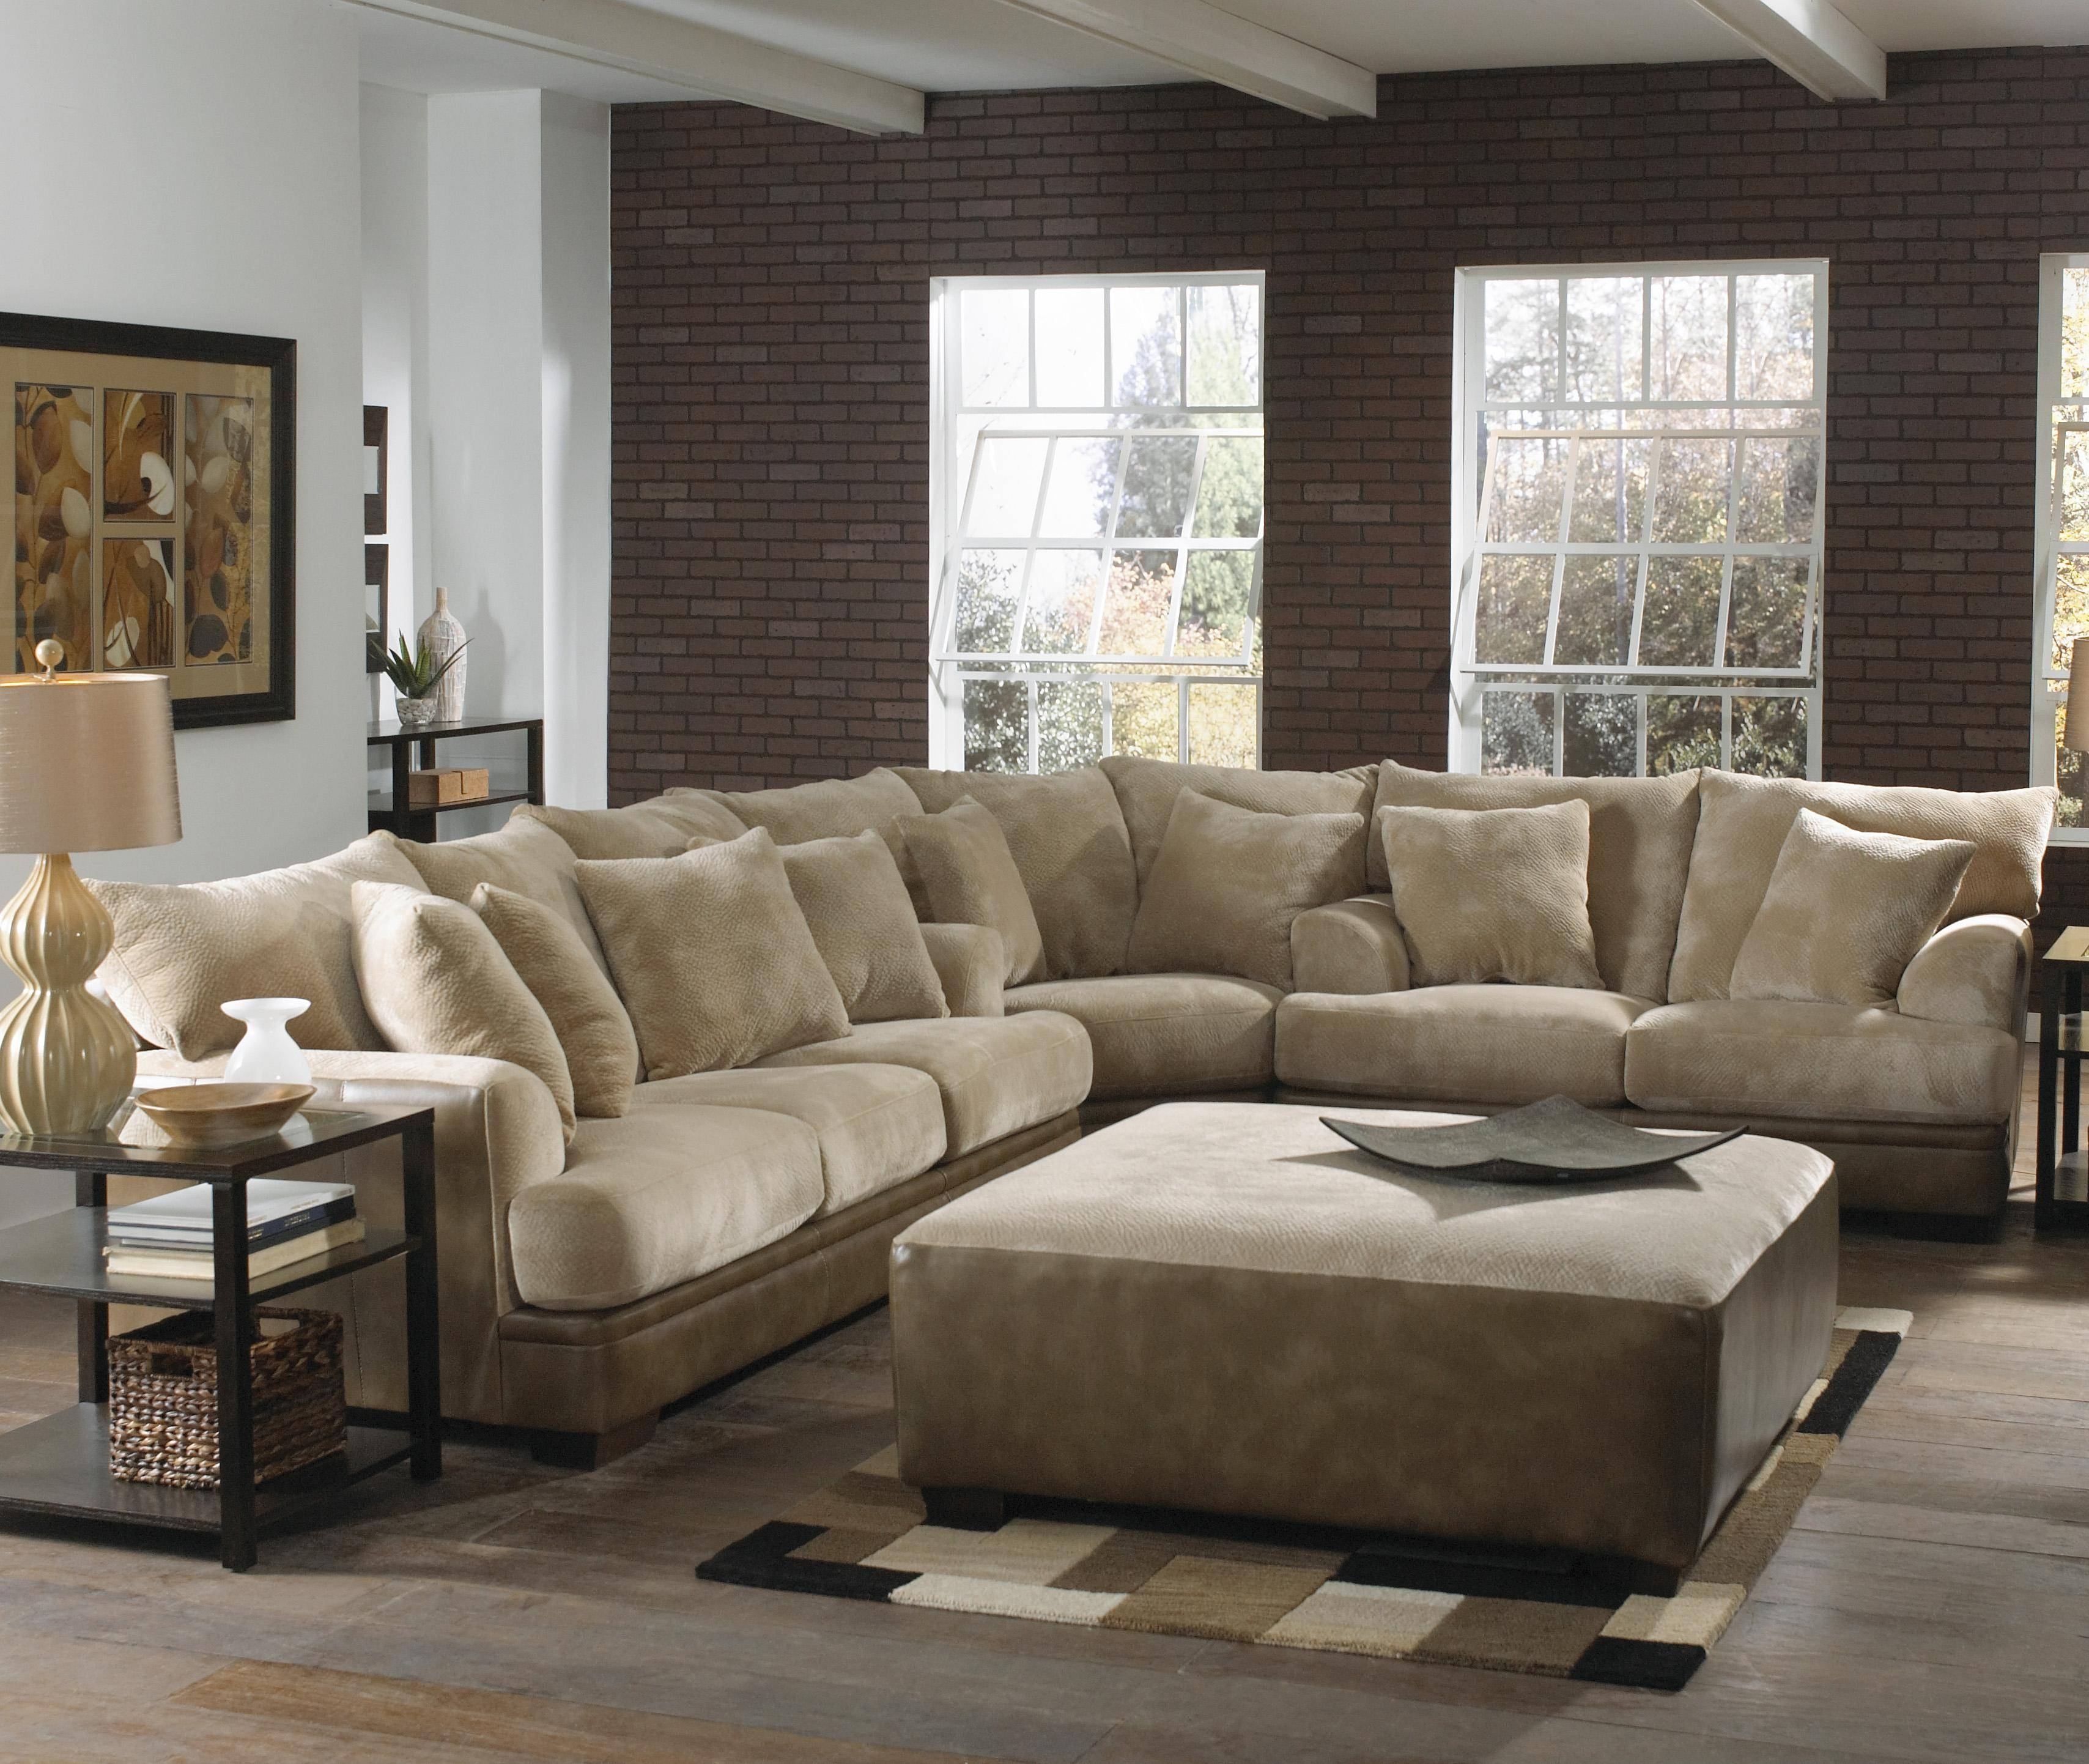 Wide Seat Sectional Sofas - Cleanupflorida pertaining to Wide Seat Sectional Sofas (Image 25 of 25)